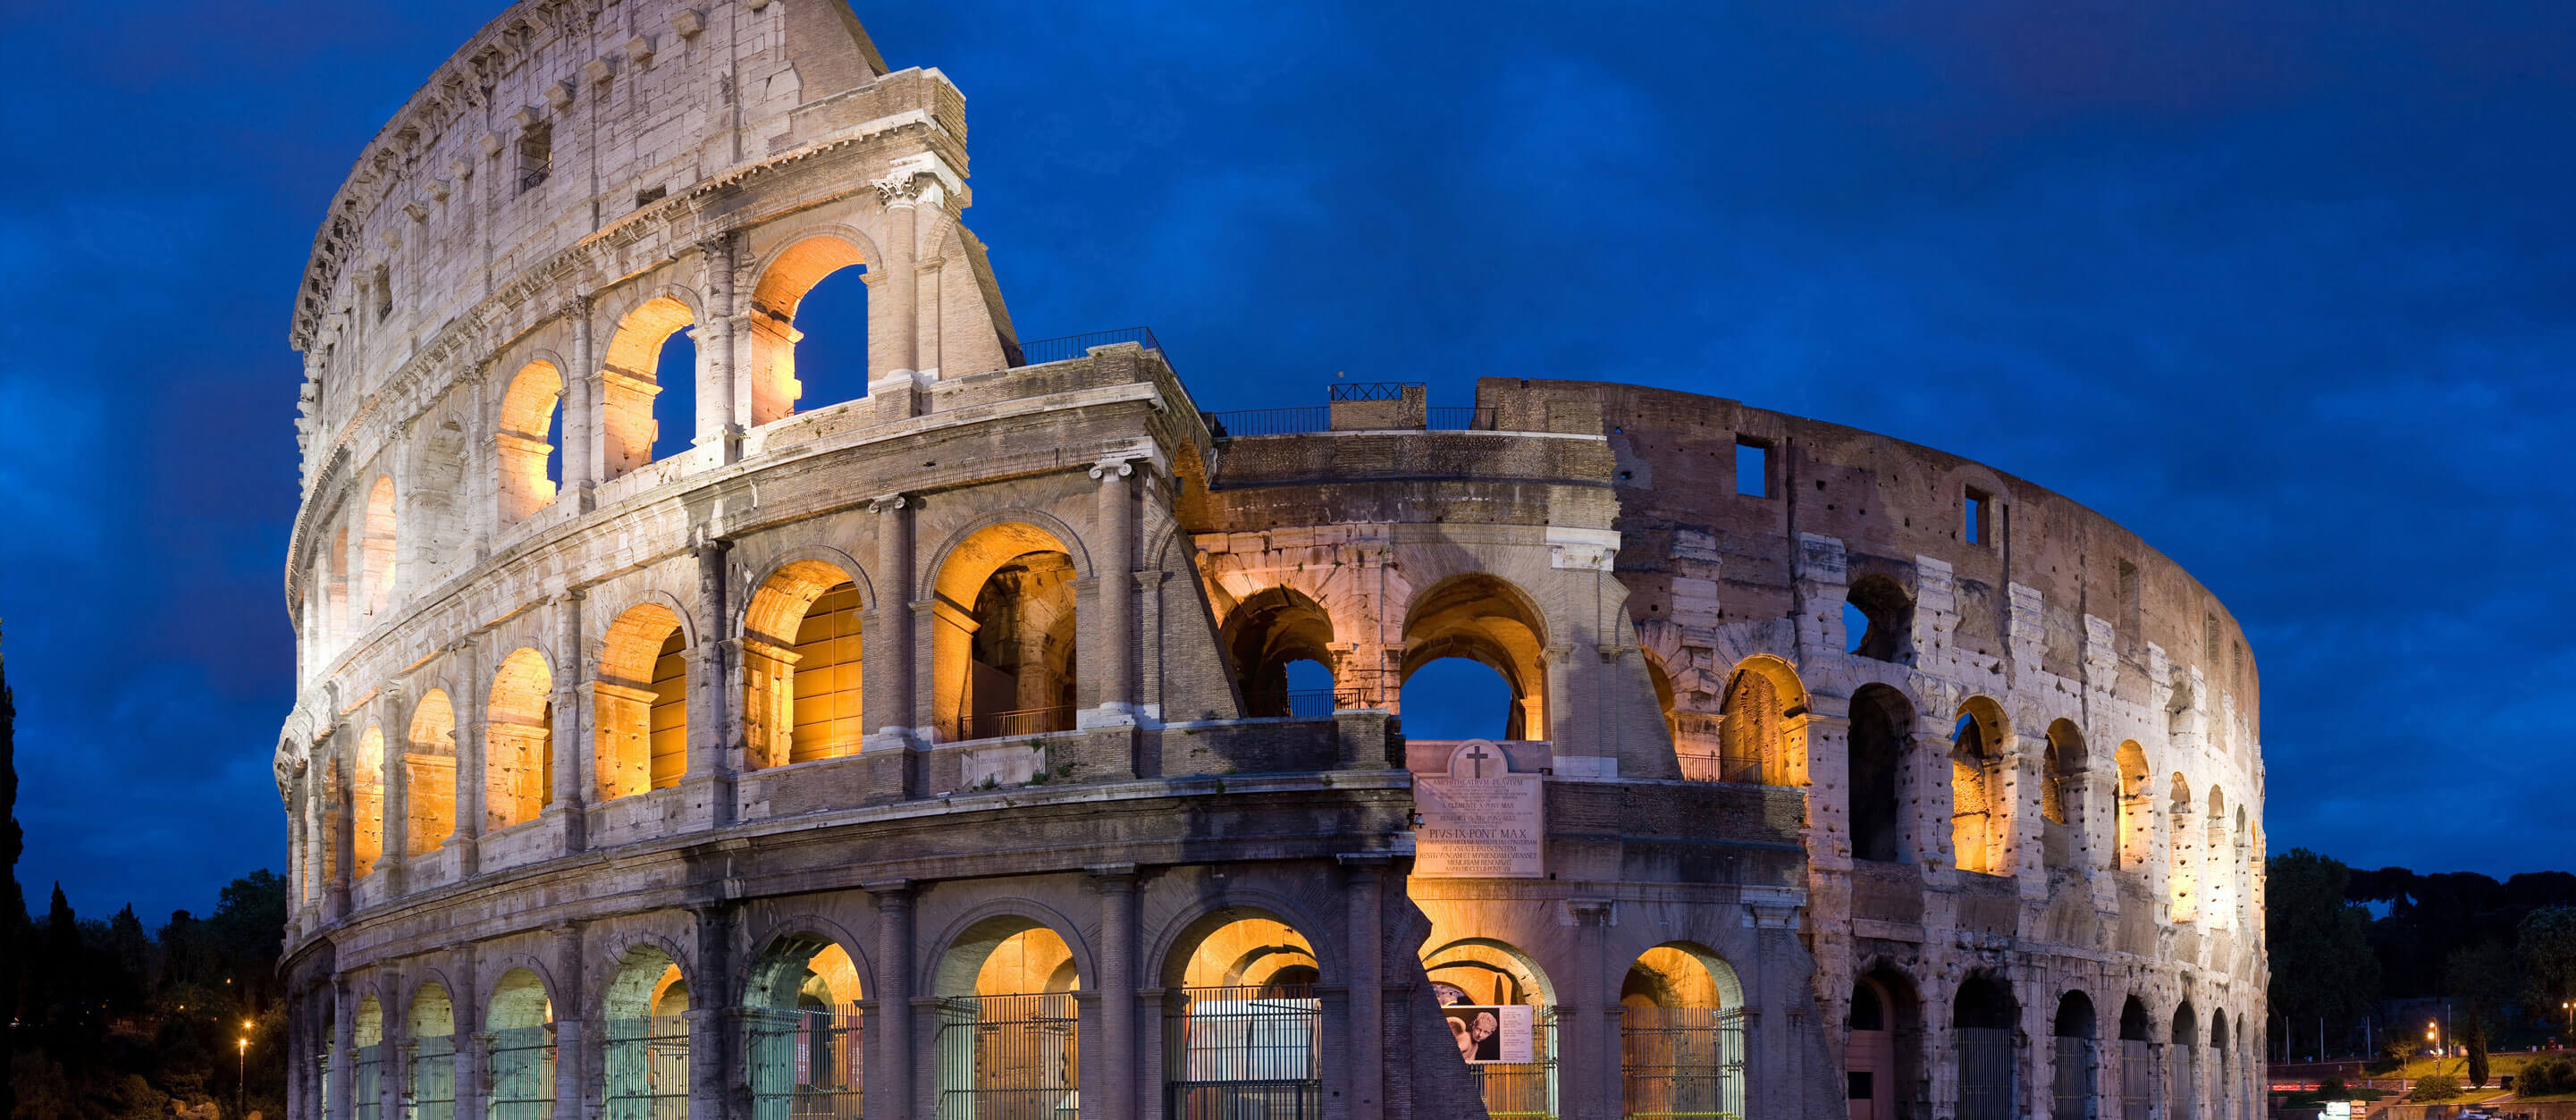 10 things to see in Rome